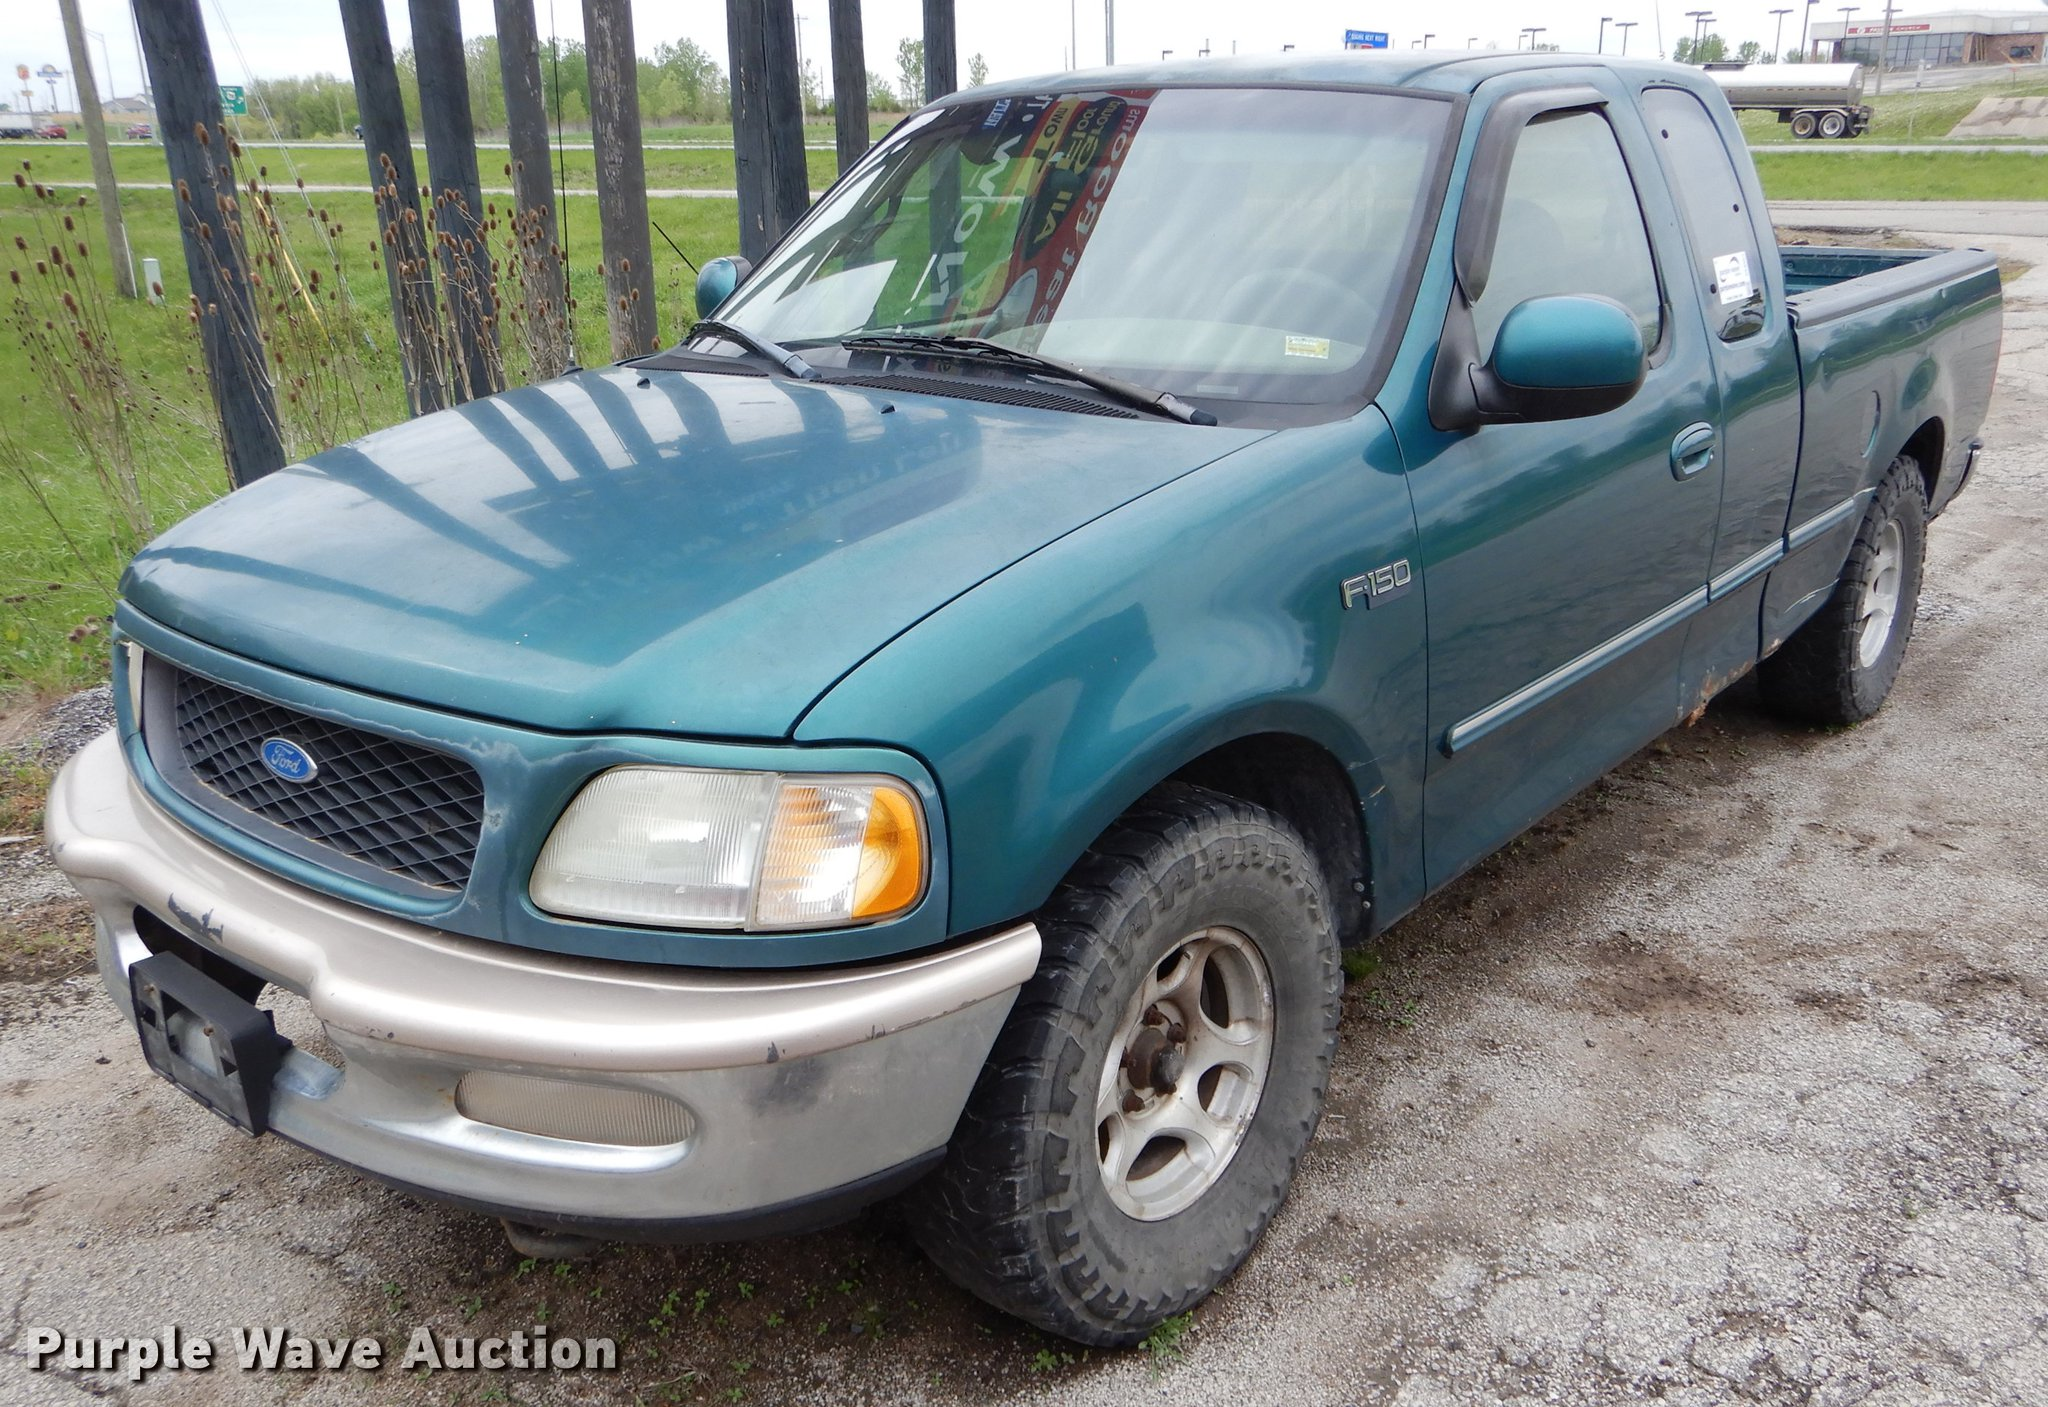 1997 Ford F150 Supercab Pickup Truck Item De8363 Wednesd